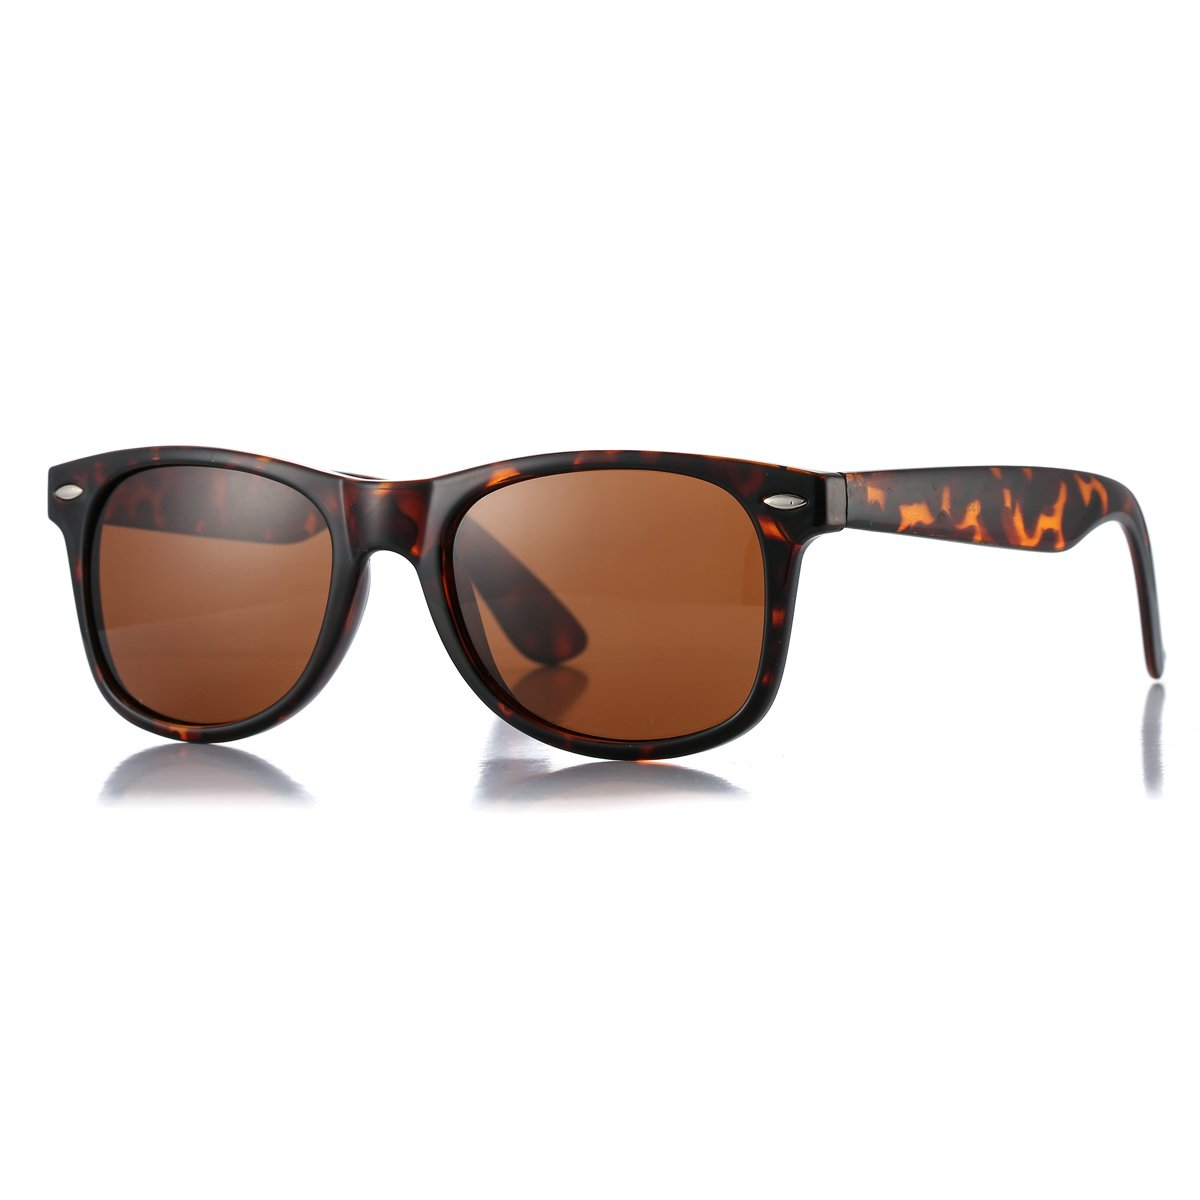 8c2644aac8 Amazon.com  AZORB Classic Polarized Sunglasses Unisex Square Horn Rimmed  Design (Tortoise Brown